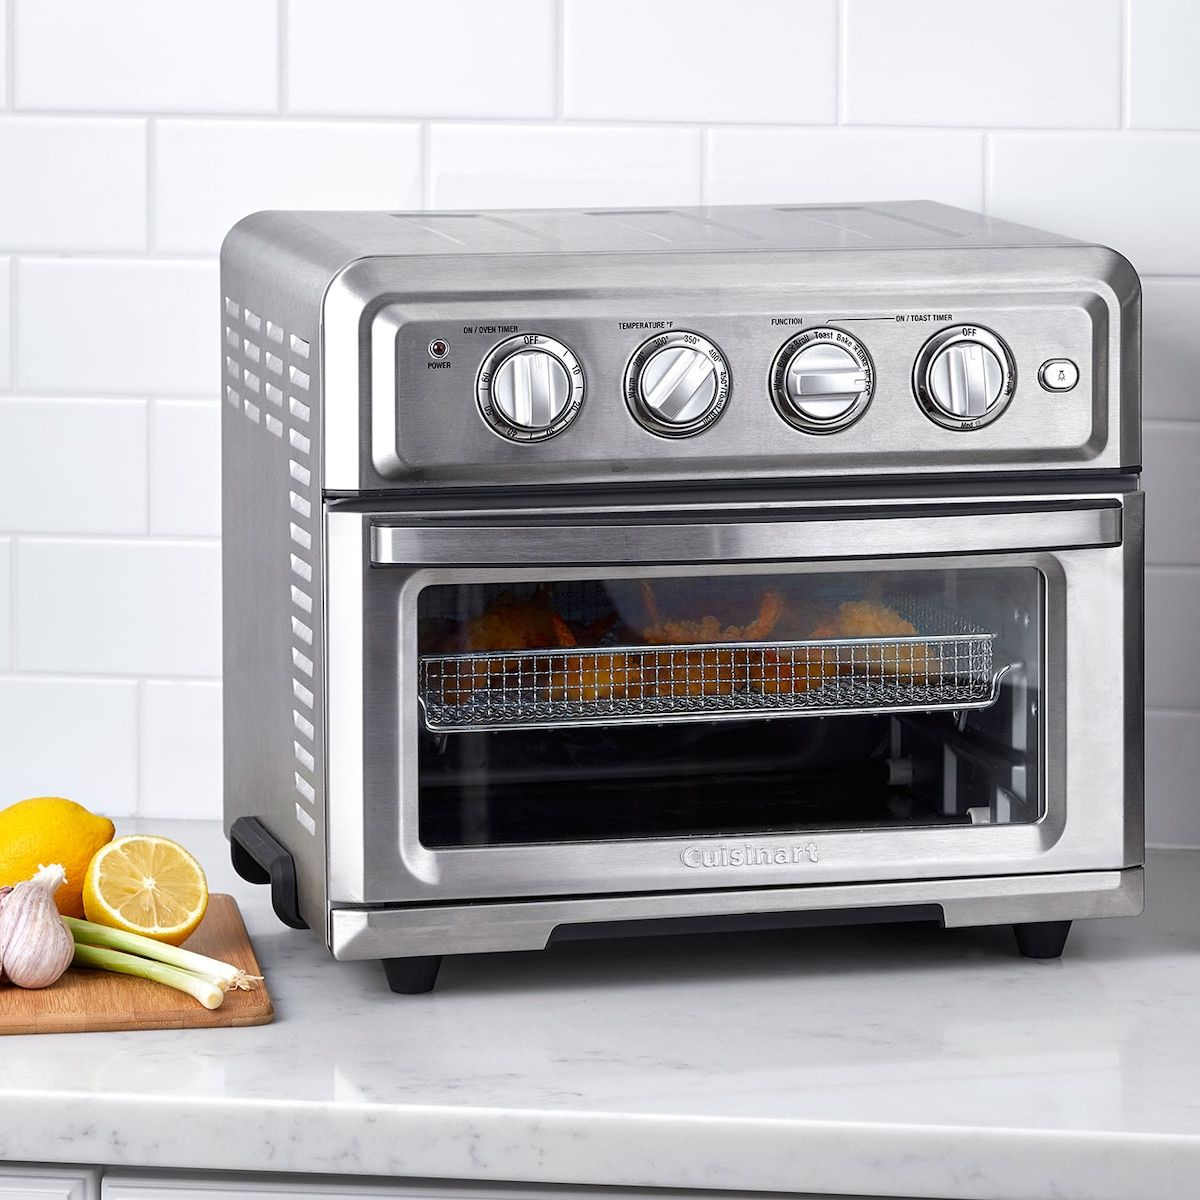 Cuisinart Airfryer Convection Oven Convection Oven Oven Convection